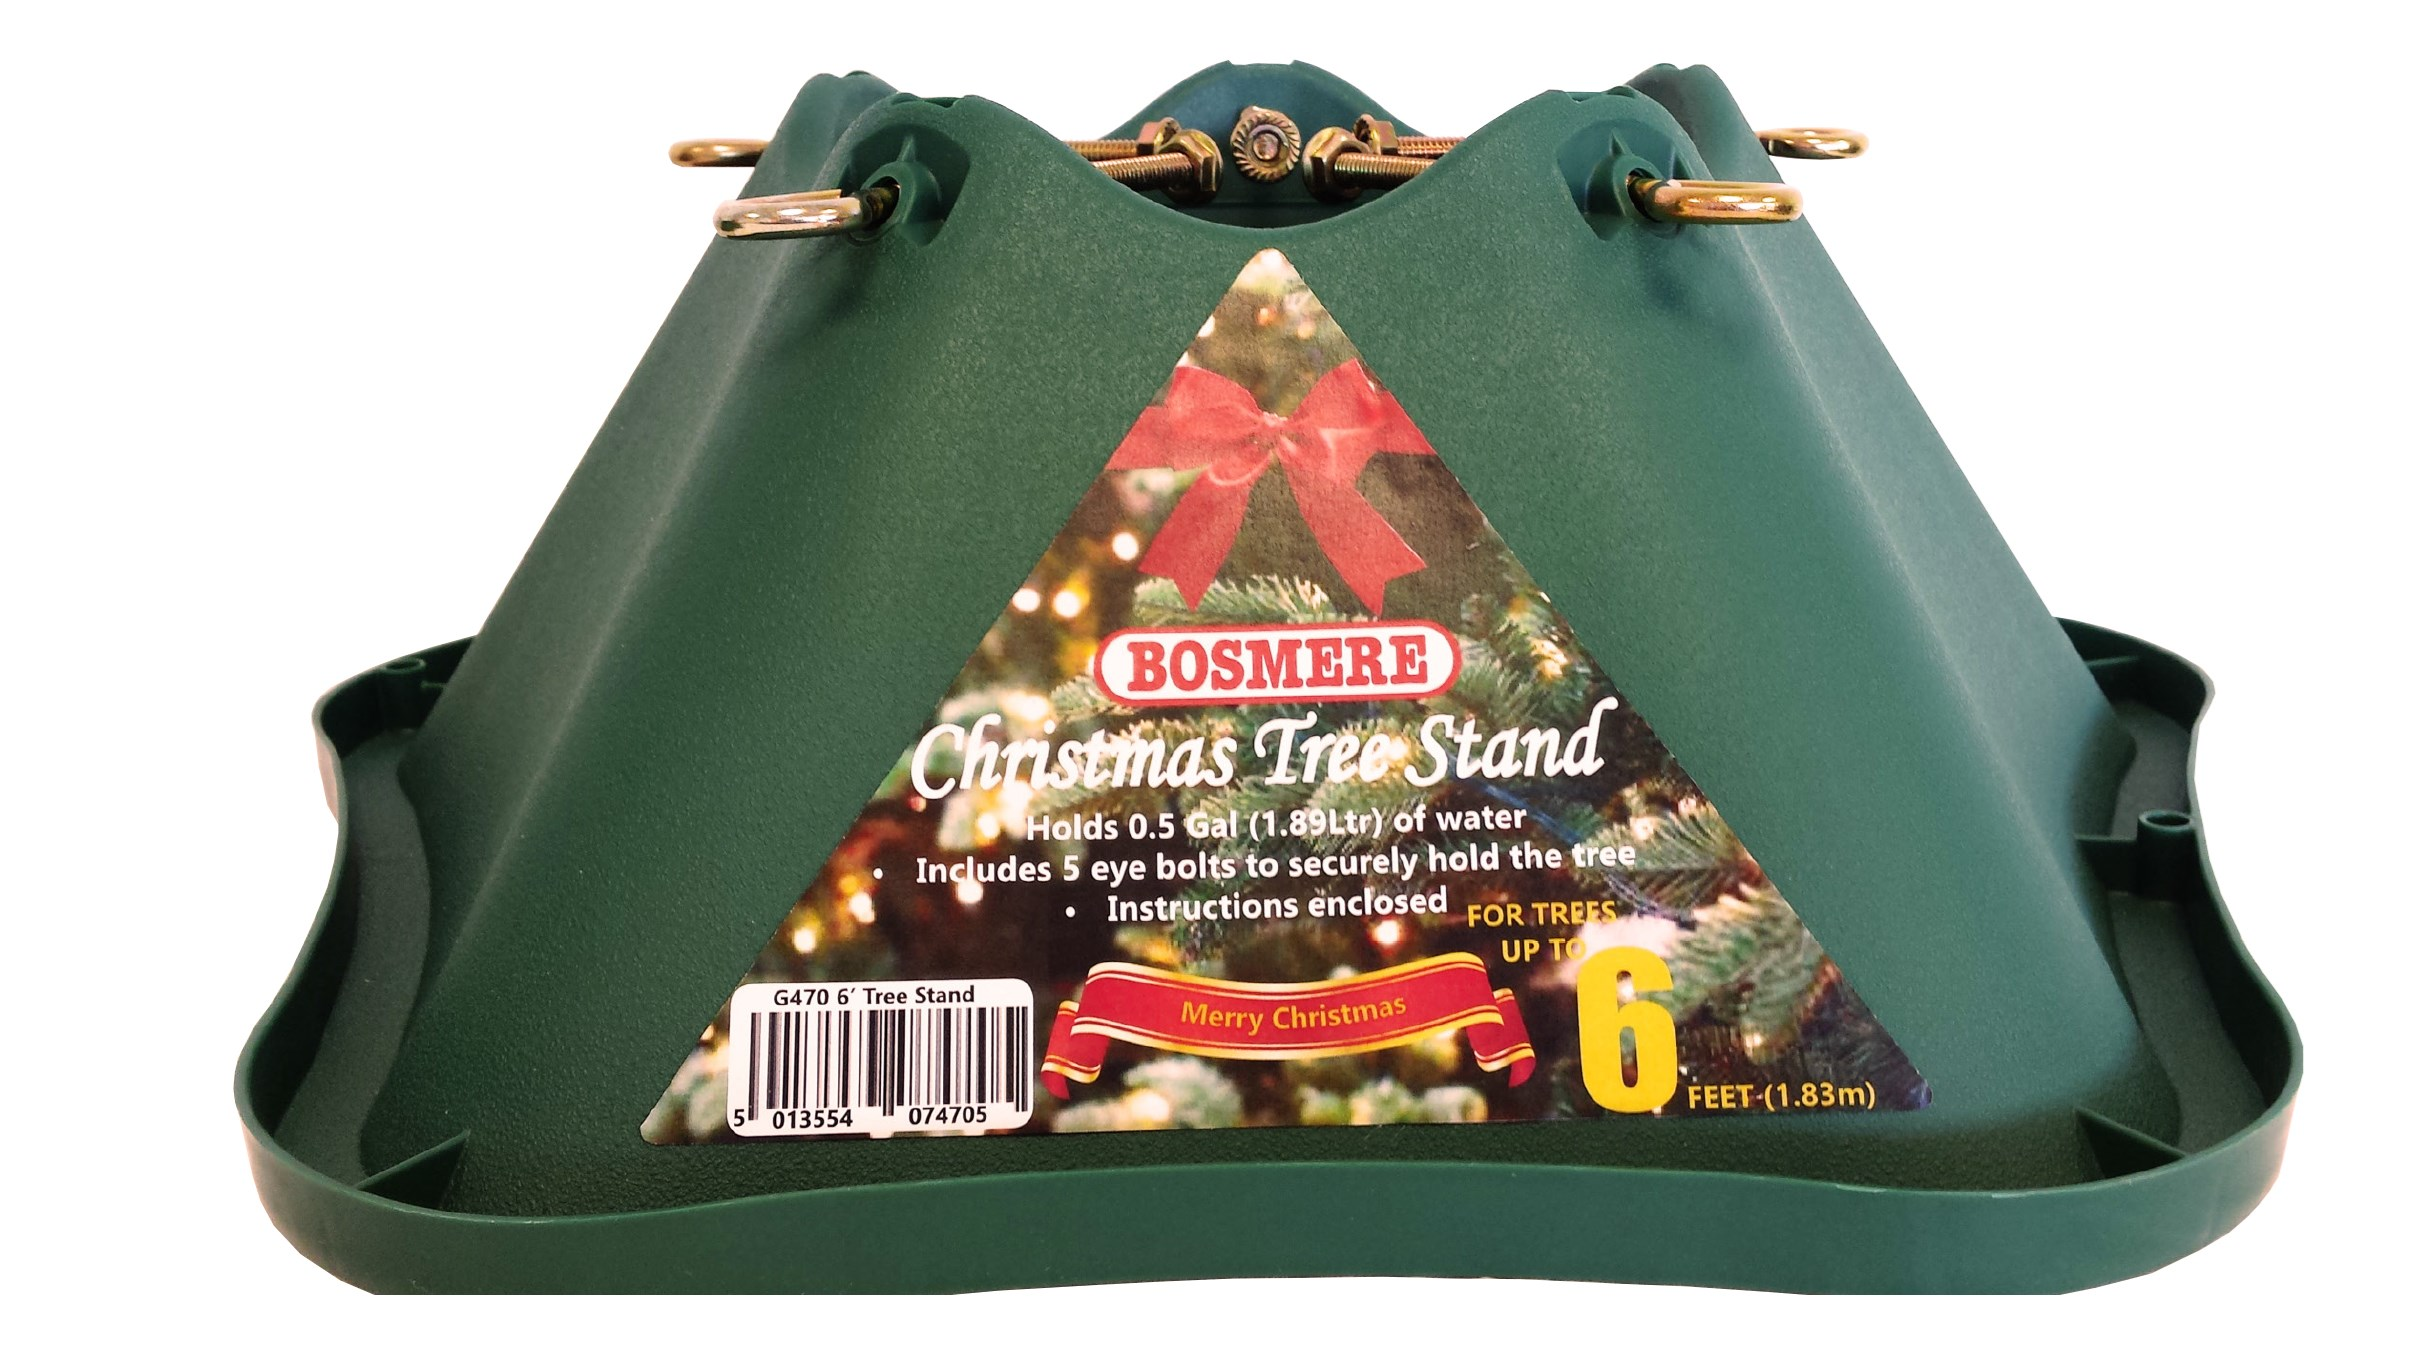 Bosmere Green Christmas Tree Stand